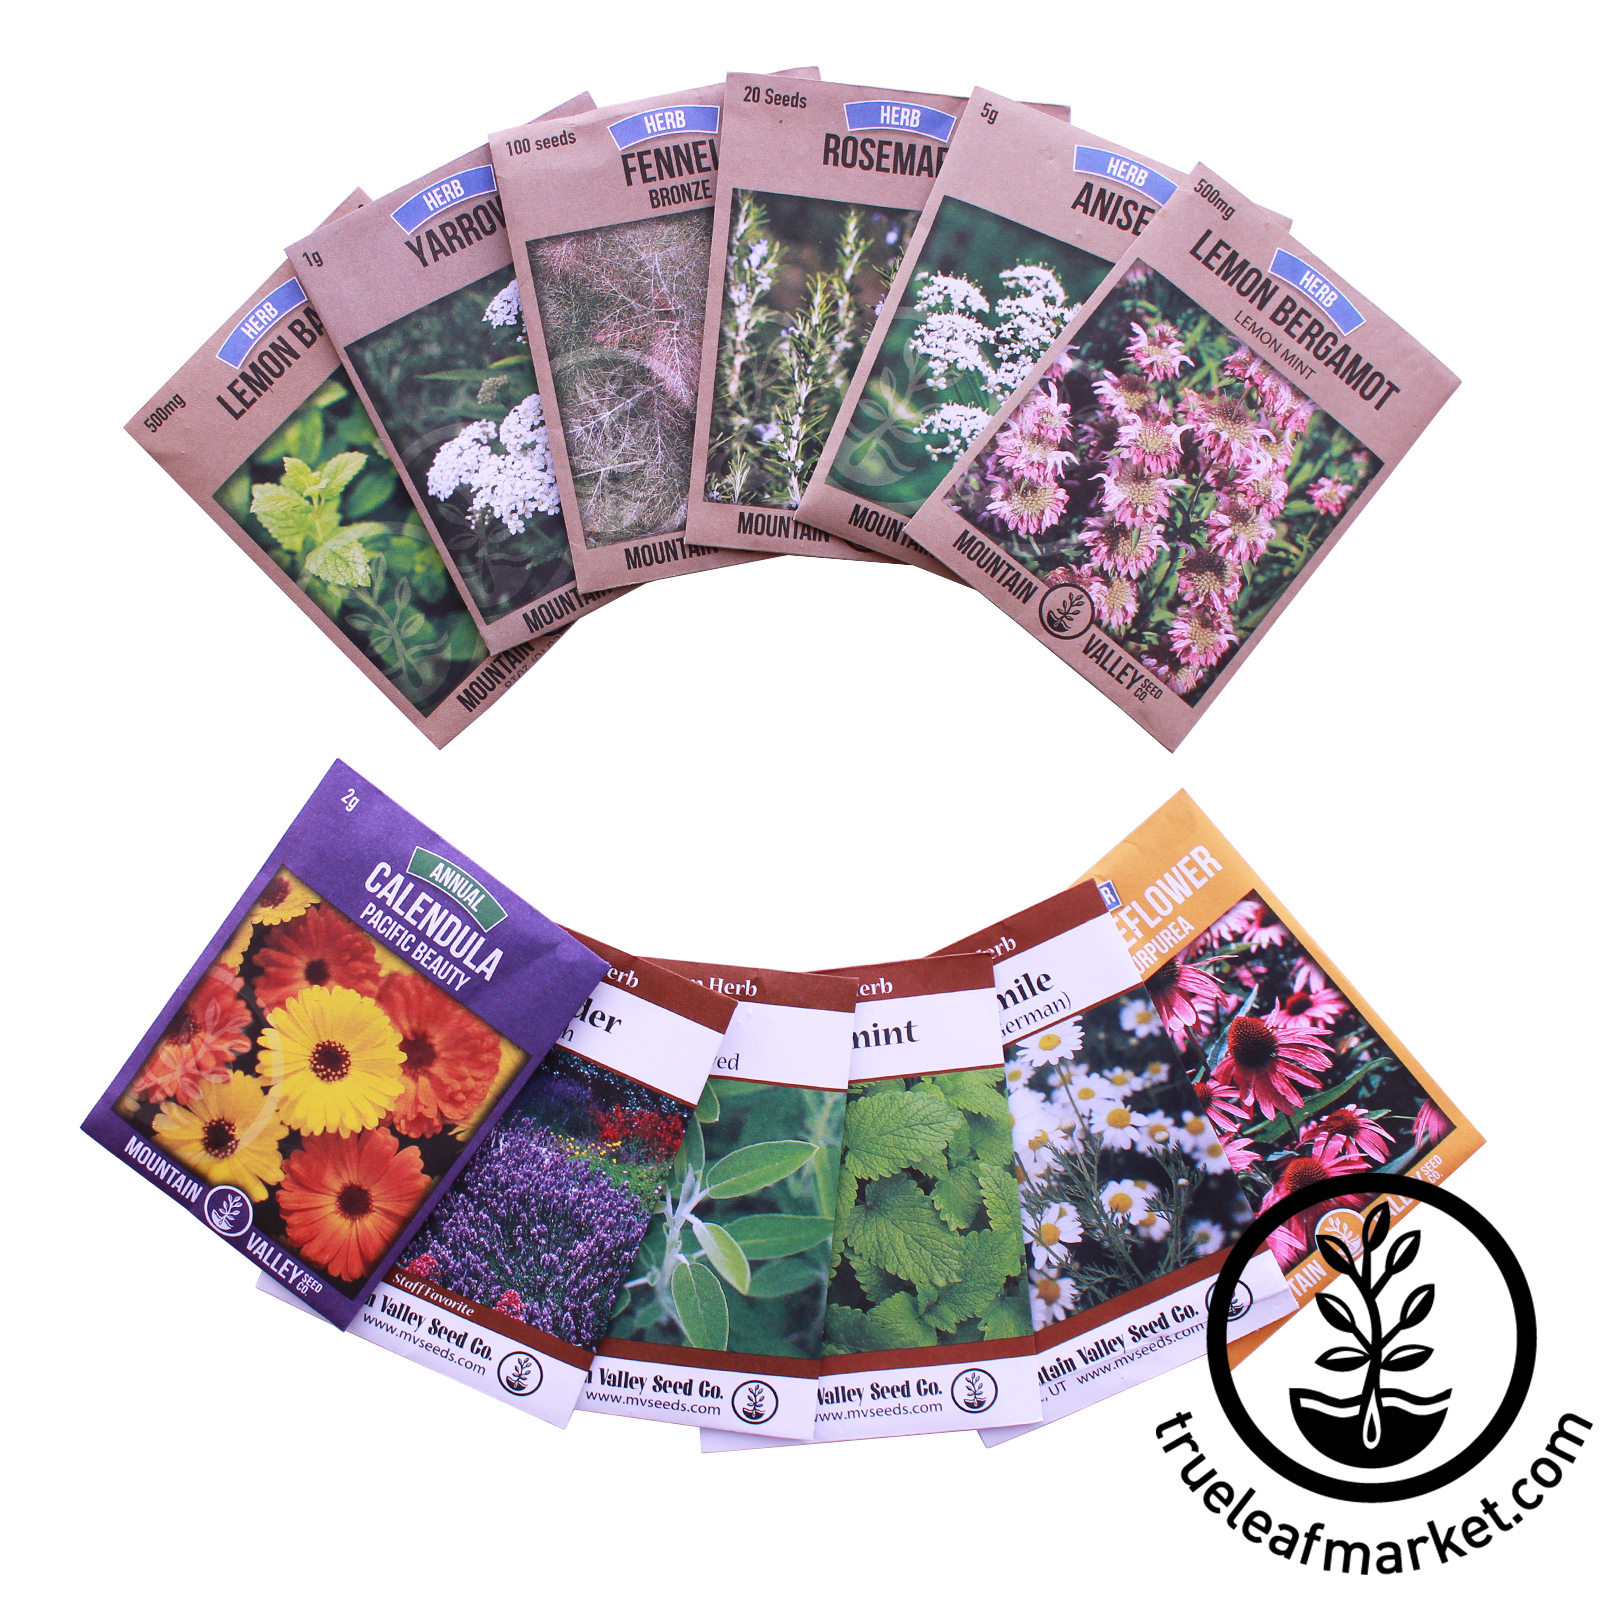 Herbal Tea Herb Seed Assortment Herbal Tea, Herb Seed, herb, Assortment